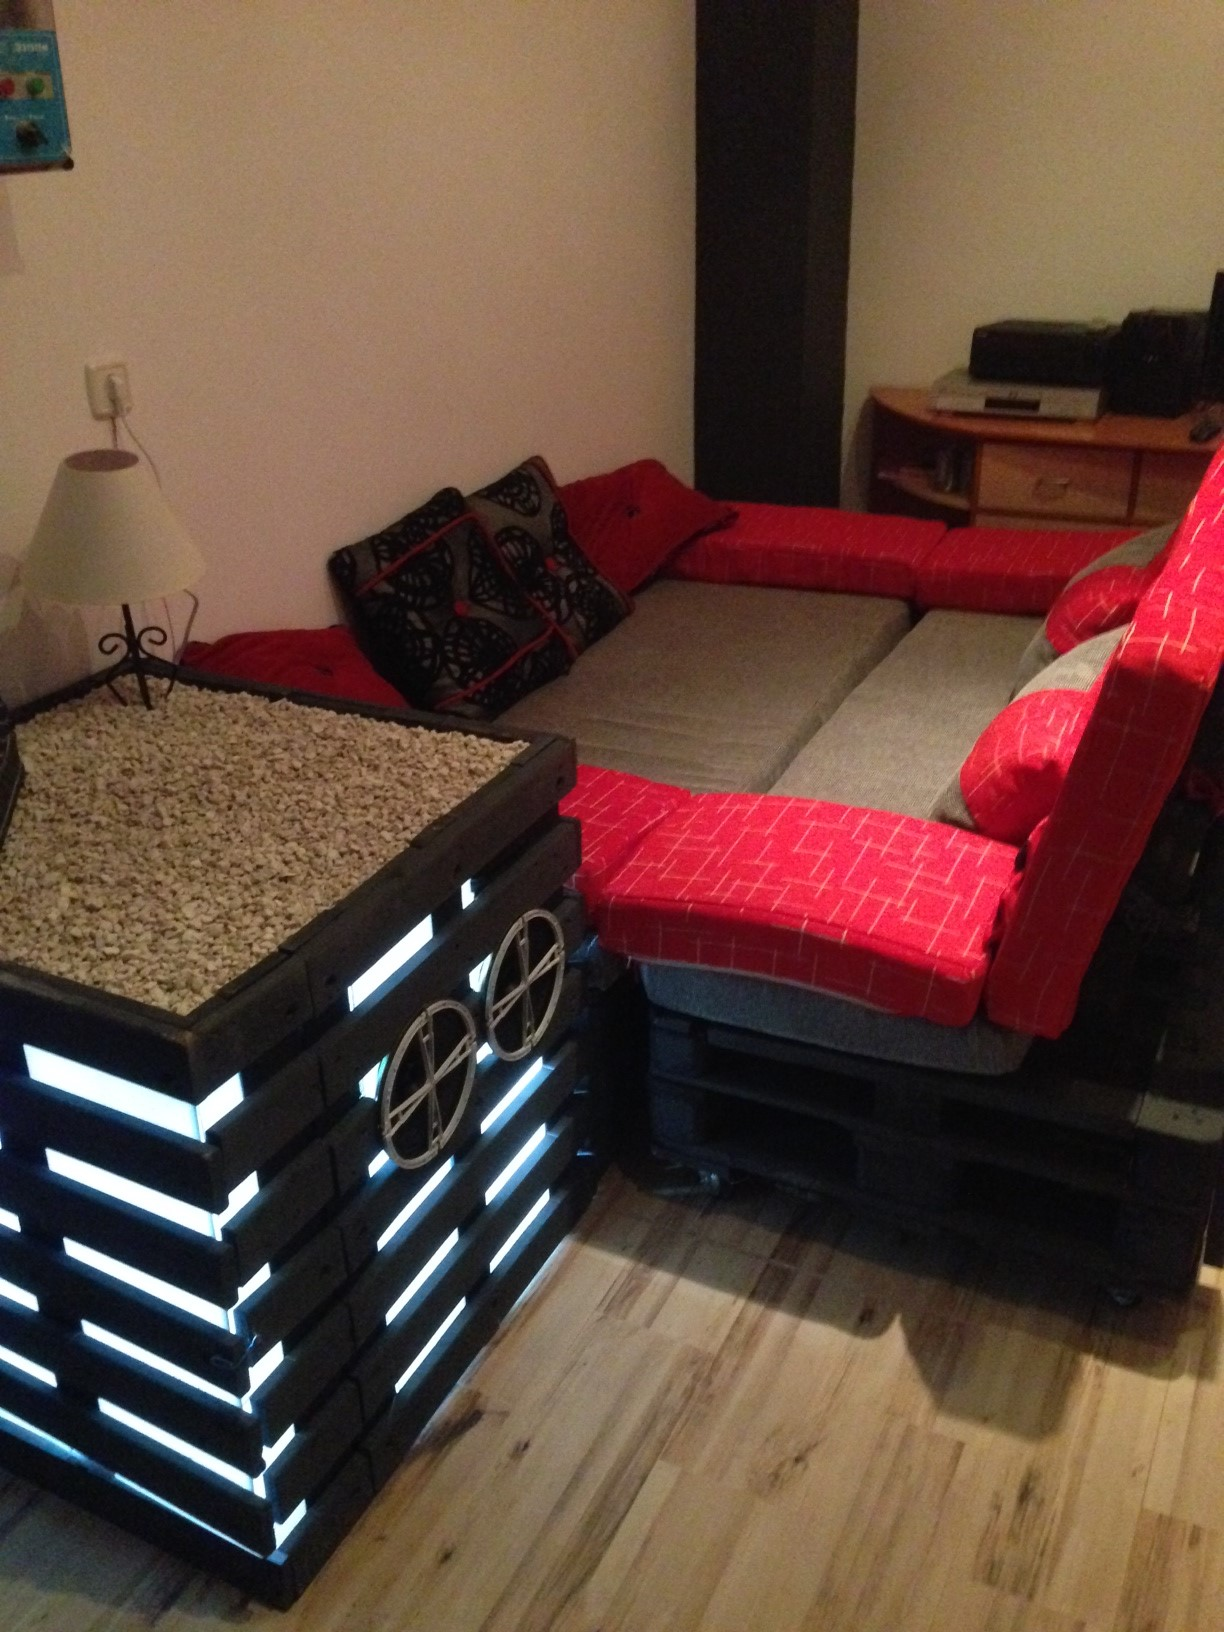 Canap et une table de chevet home cinema fait de for Canape home cinema